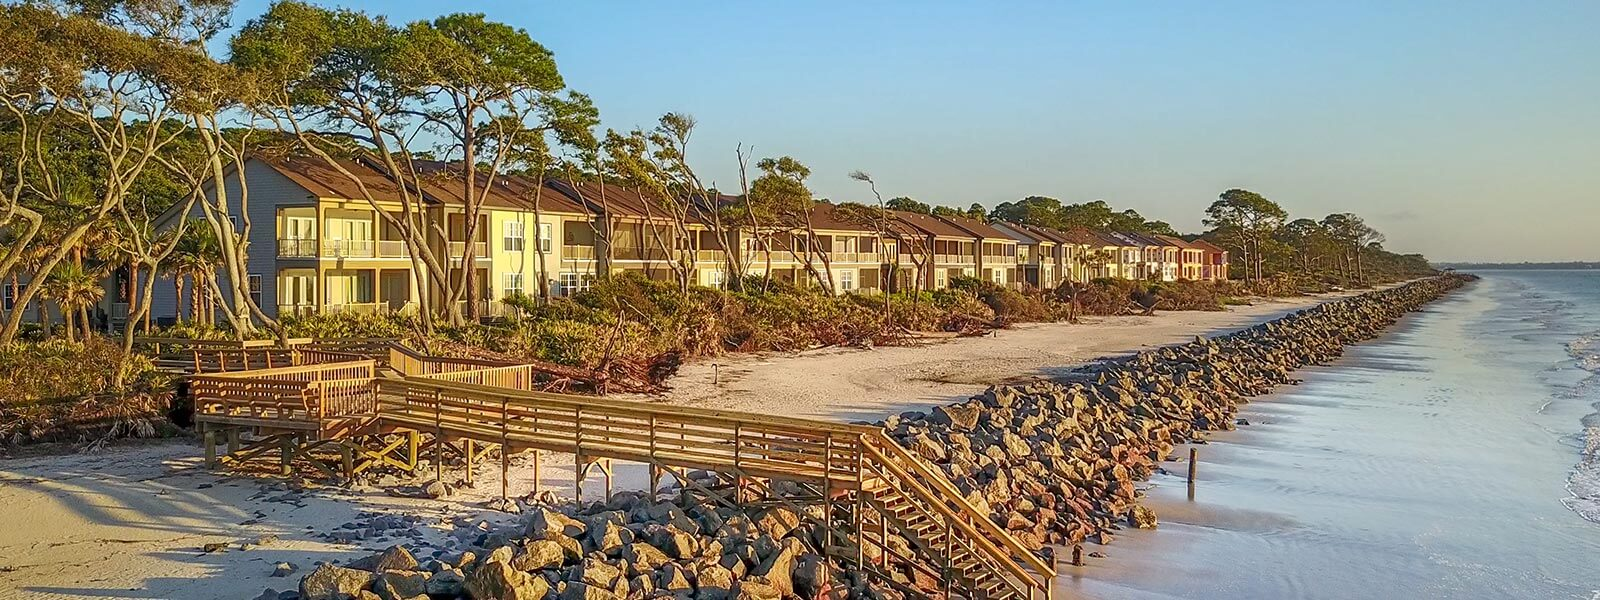 Beach Vacation Rentals on the Golden Isles